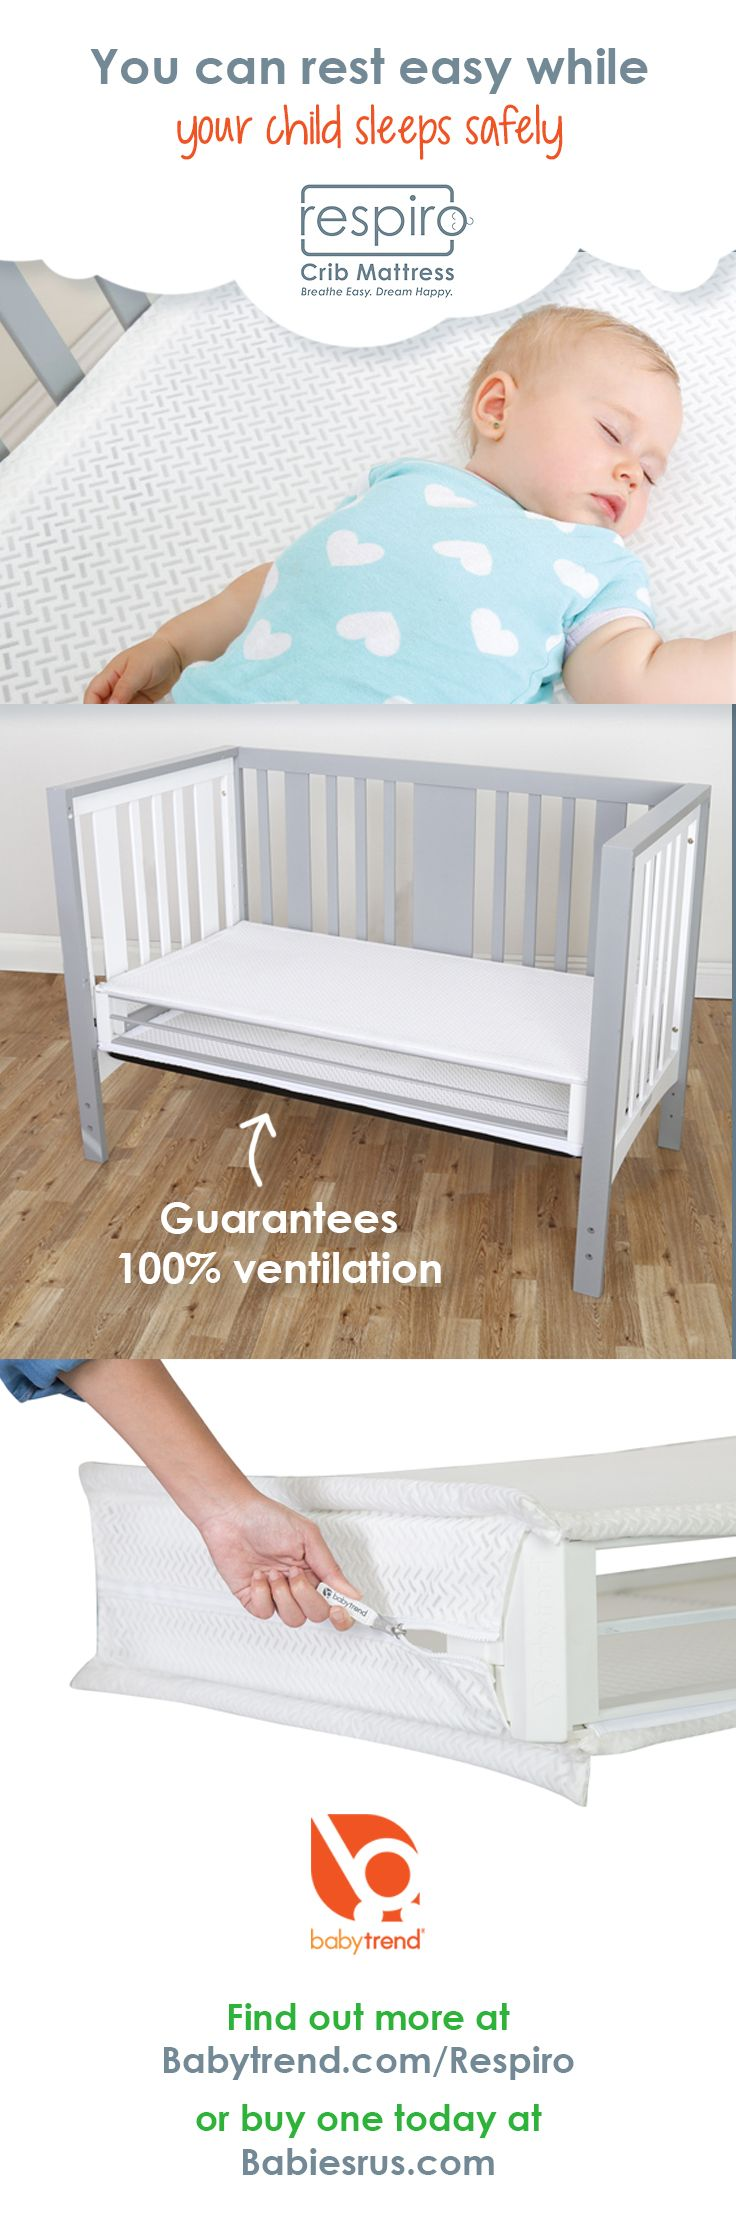 The Baby Trend RespiroTM crib mattress is completely breathable and  guarantees 100% ventilation. Available